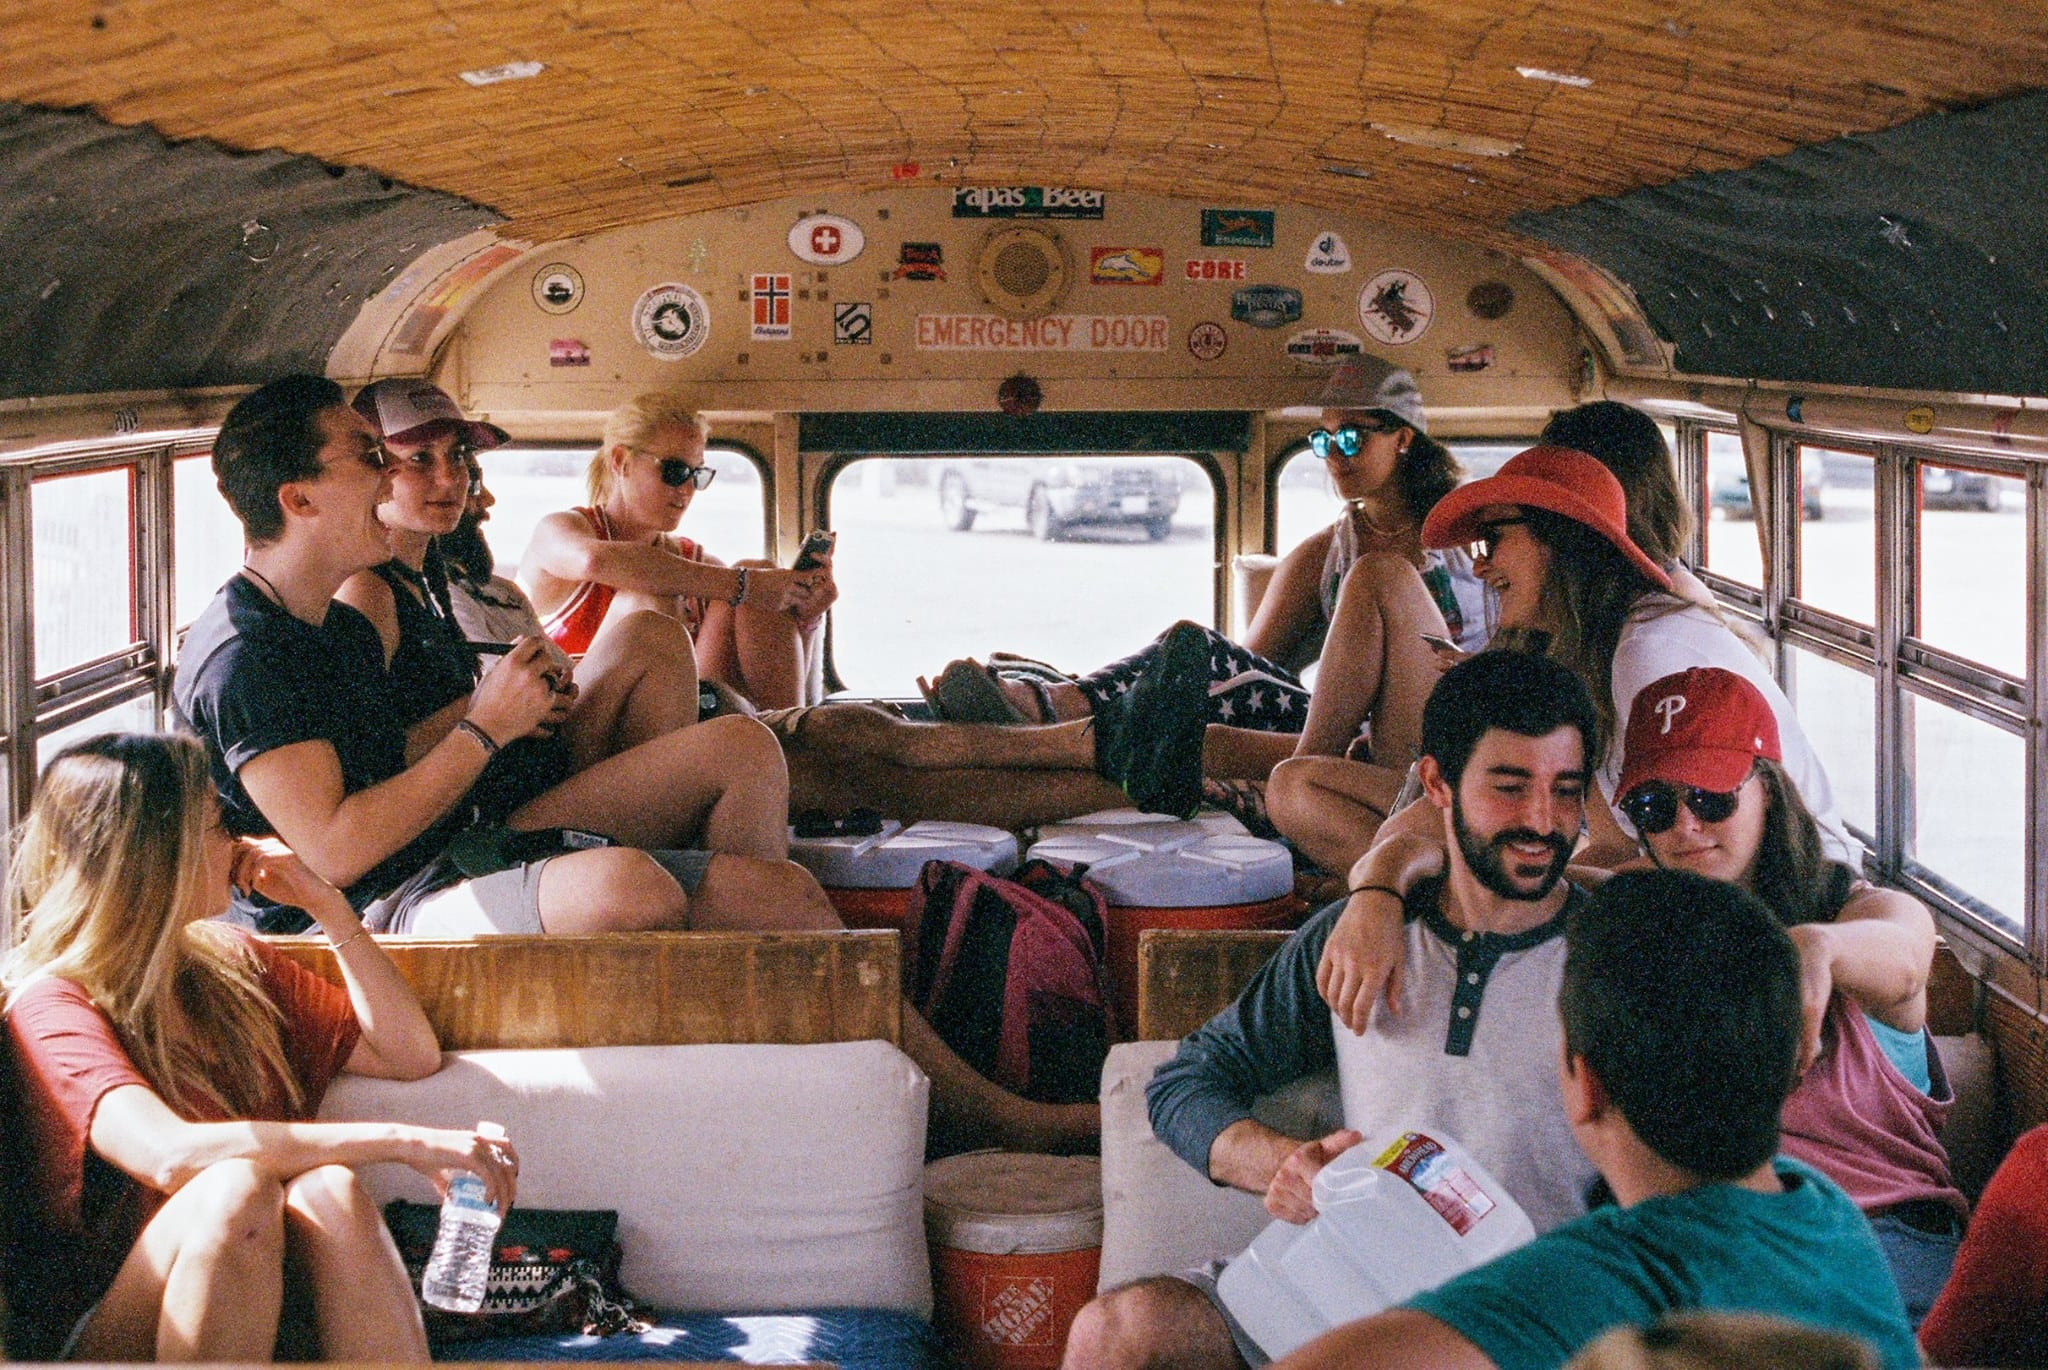 Group photo in Baja Trek school bus for overland adventure